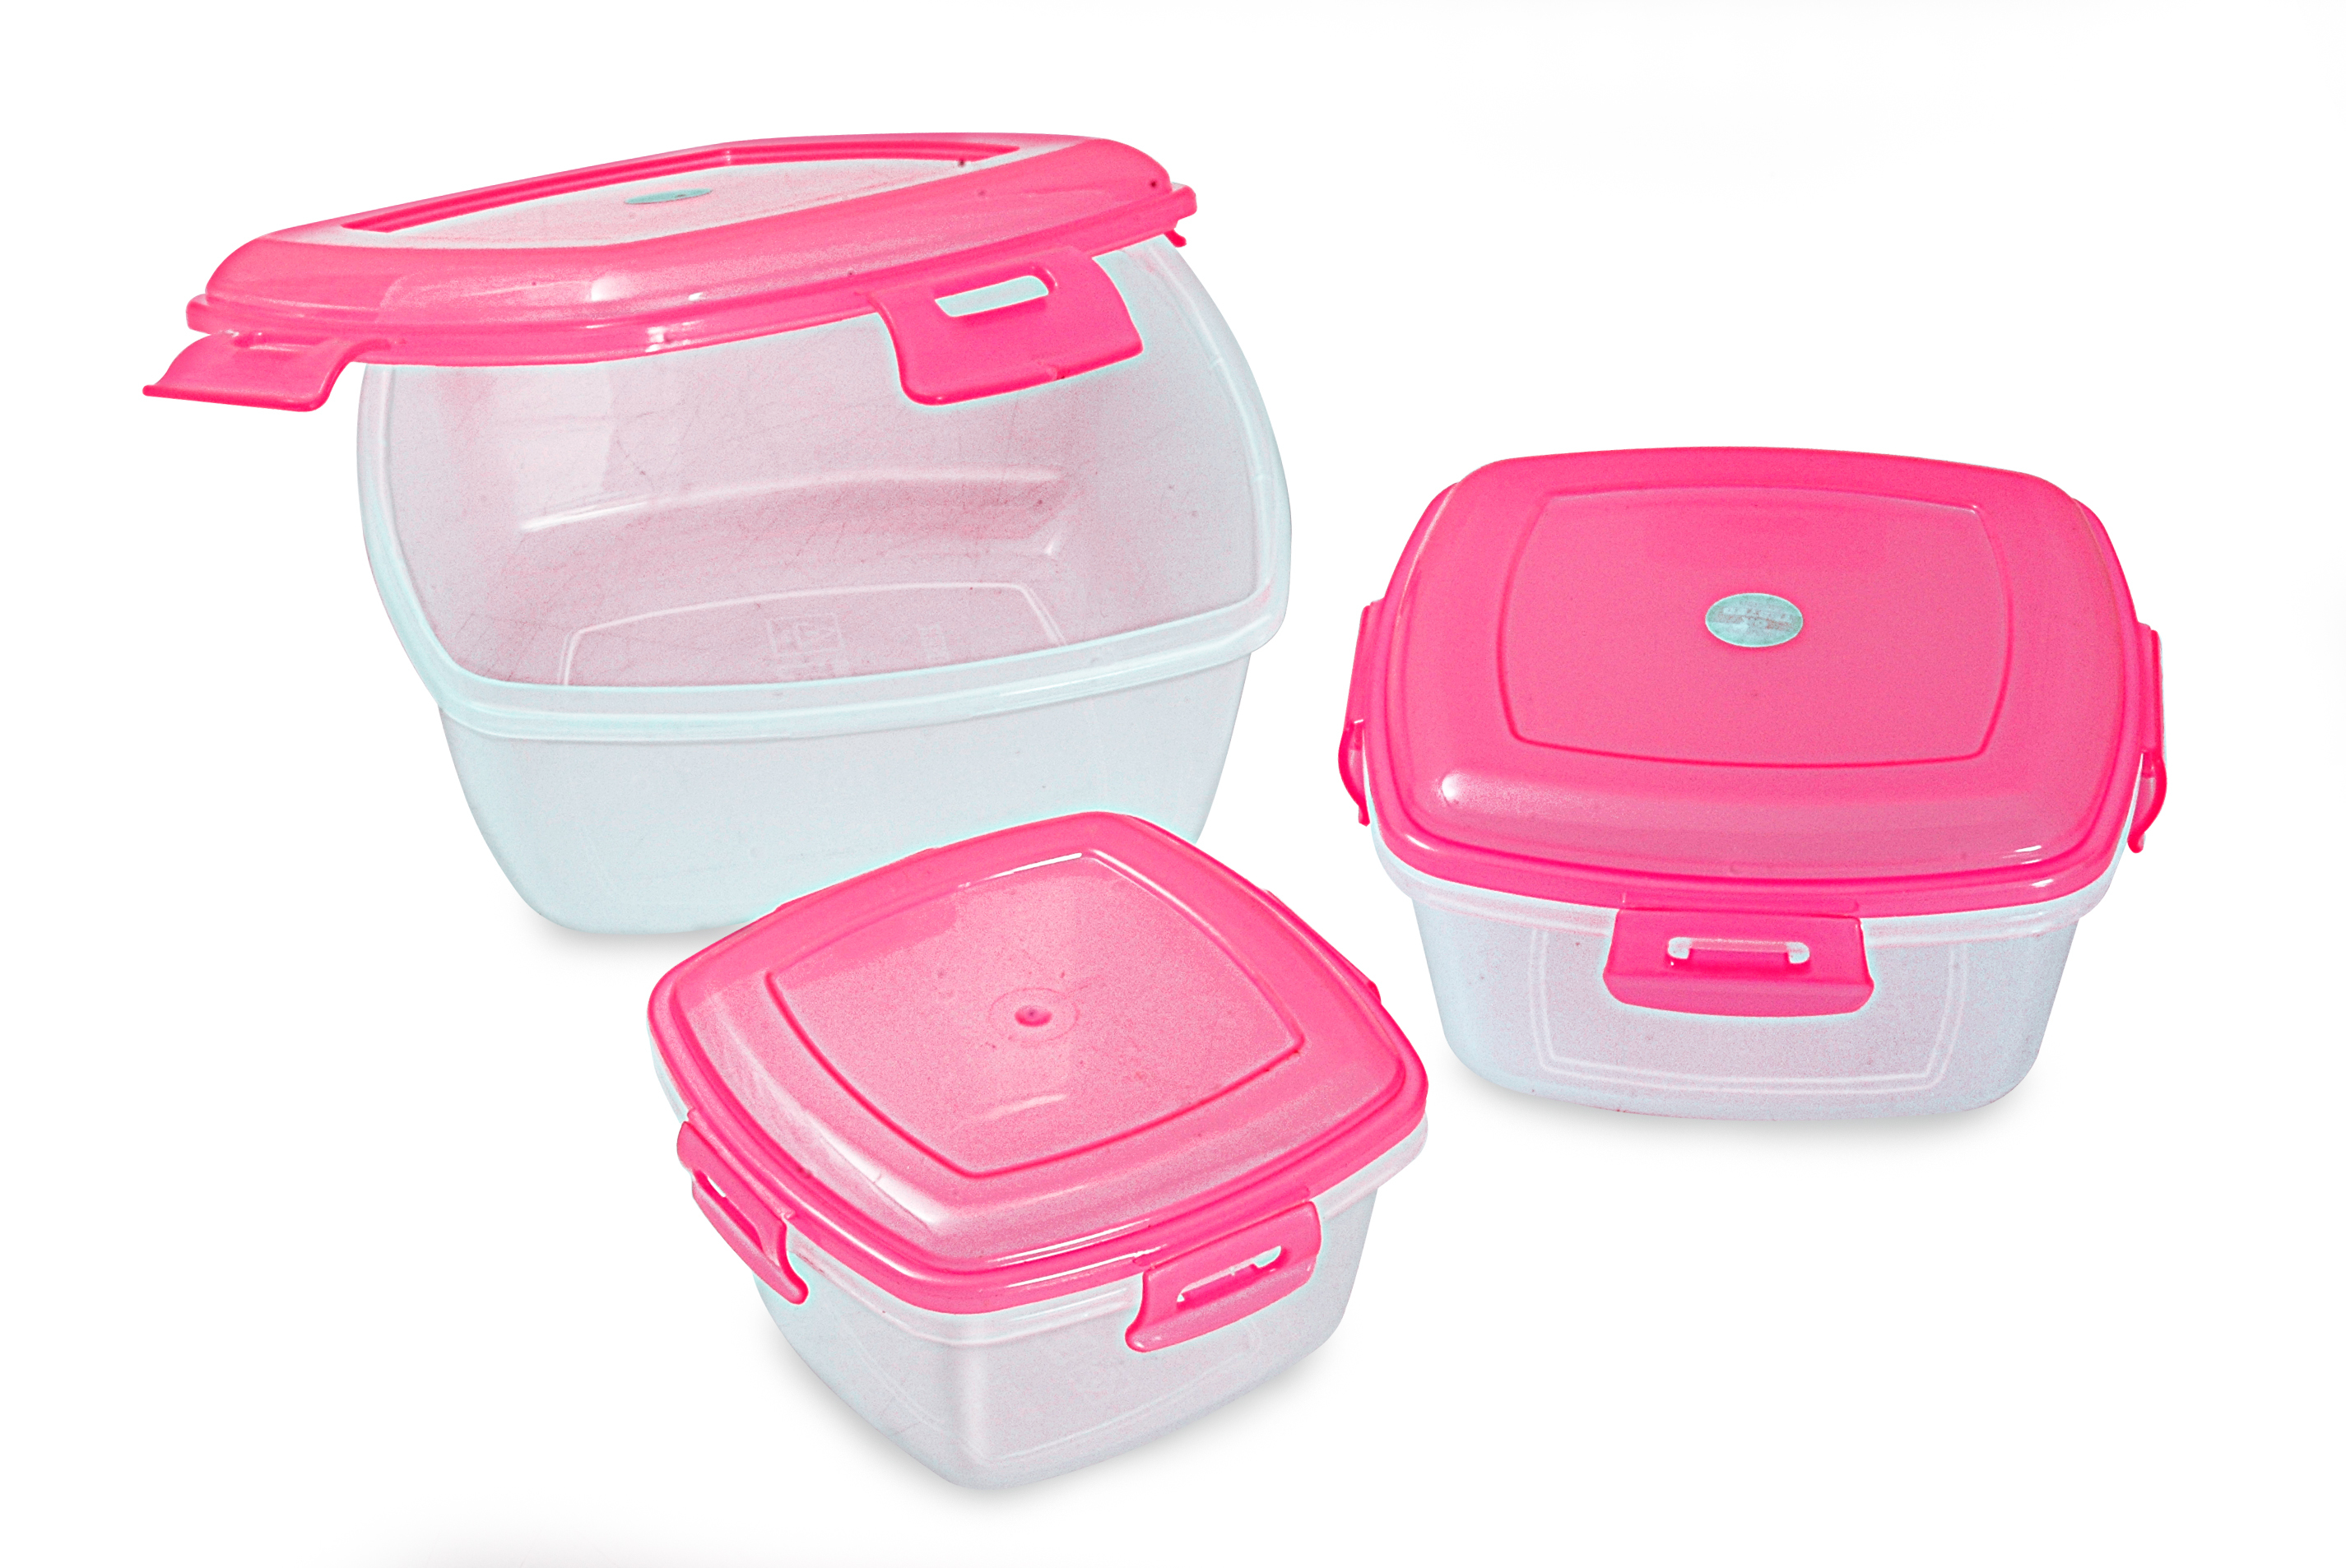 Tic Tac 3 pcs Set Lunch Box